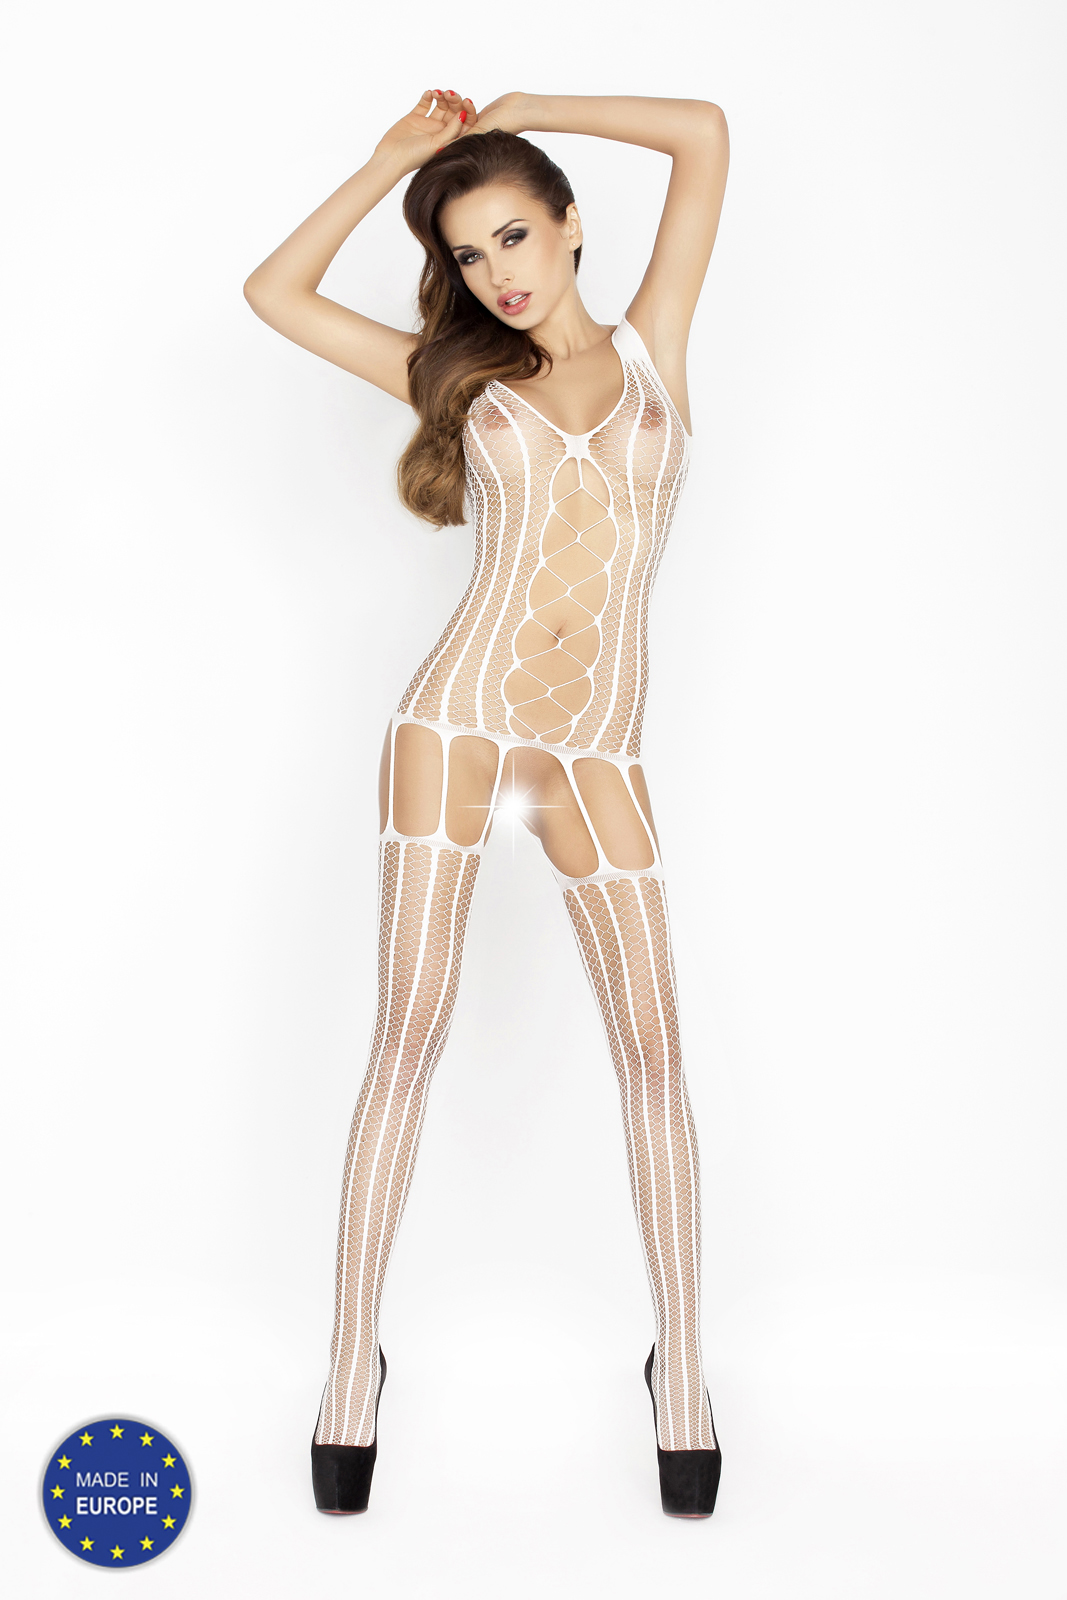 geile witte bodystocking